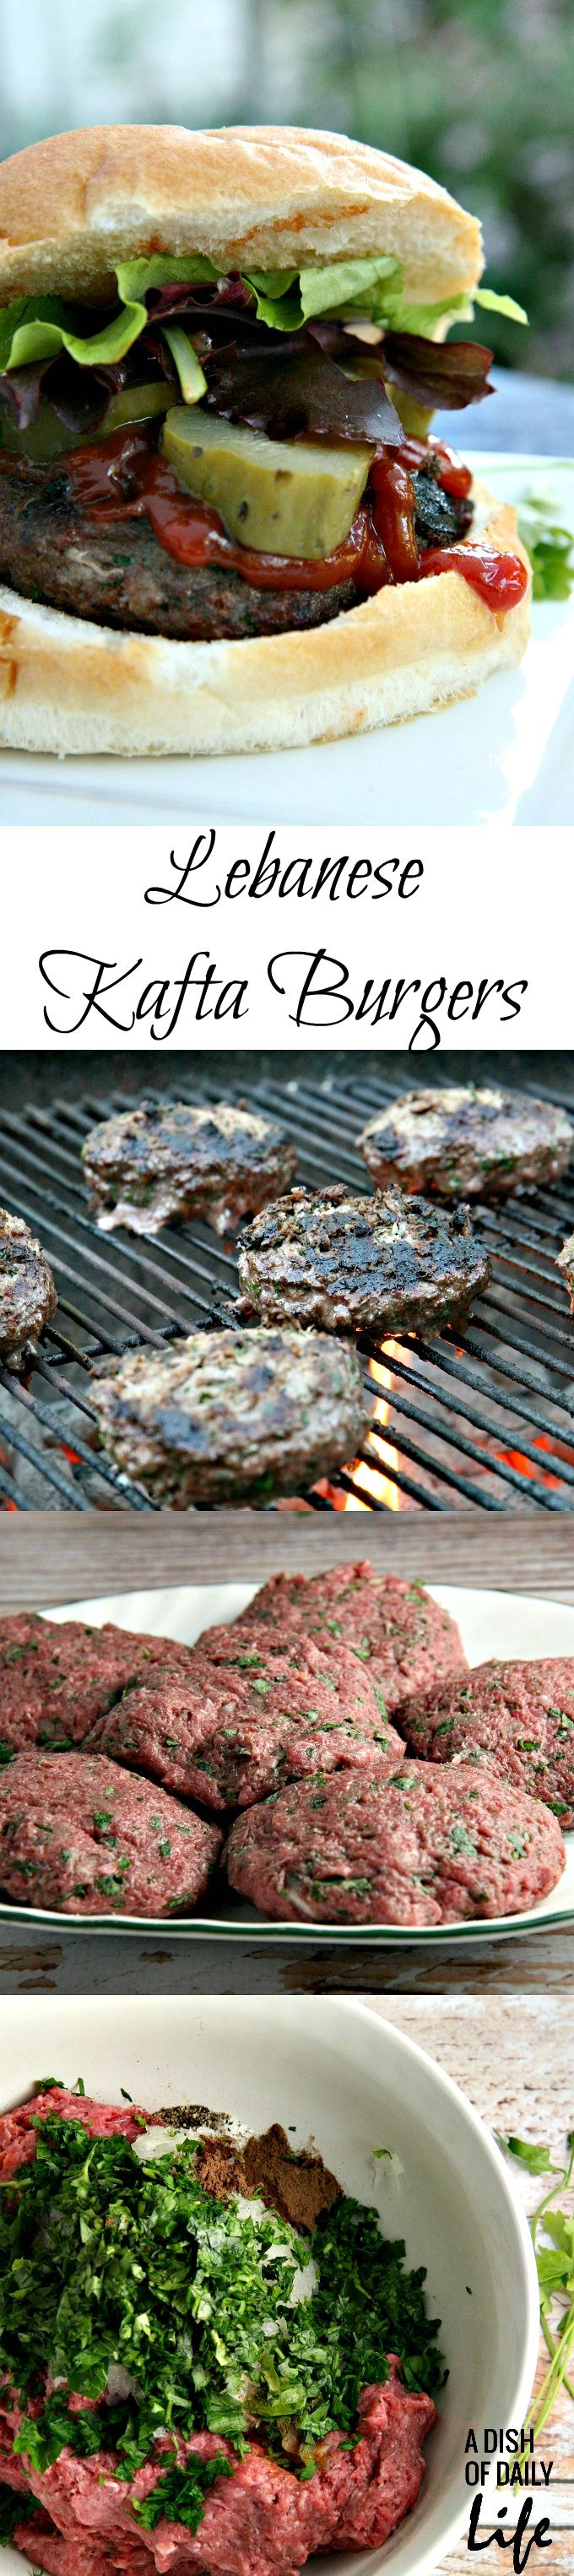 "Traditionally served ""finger-shaped"" on a skewer, this grilling recipe for Lebanese Kafta Burgers with Lamb and Beef combines Middle Eastern roots with a classic hamburger!"